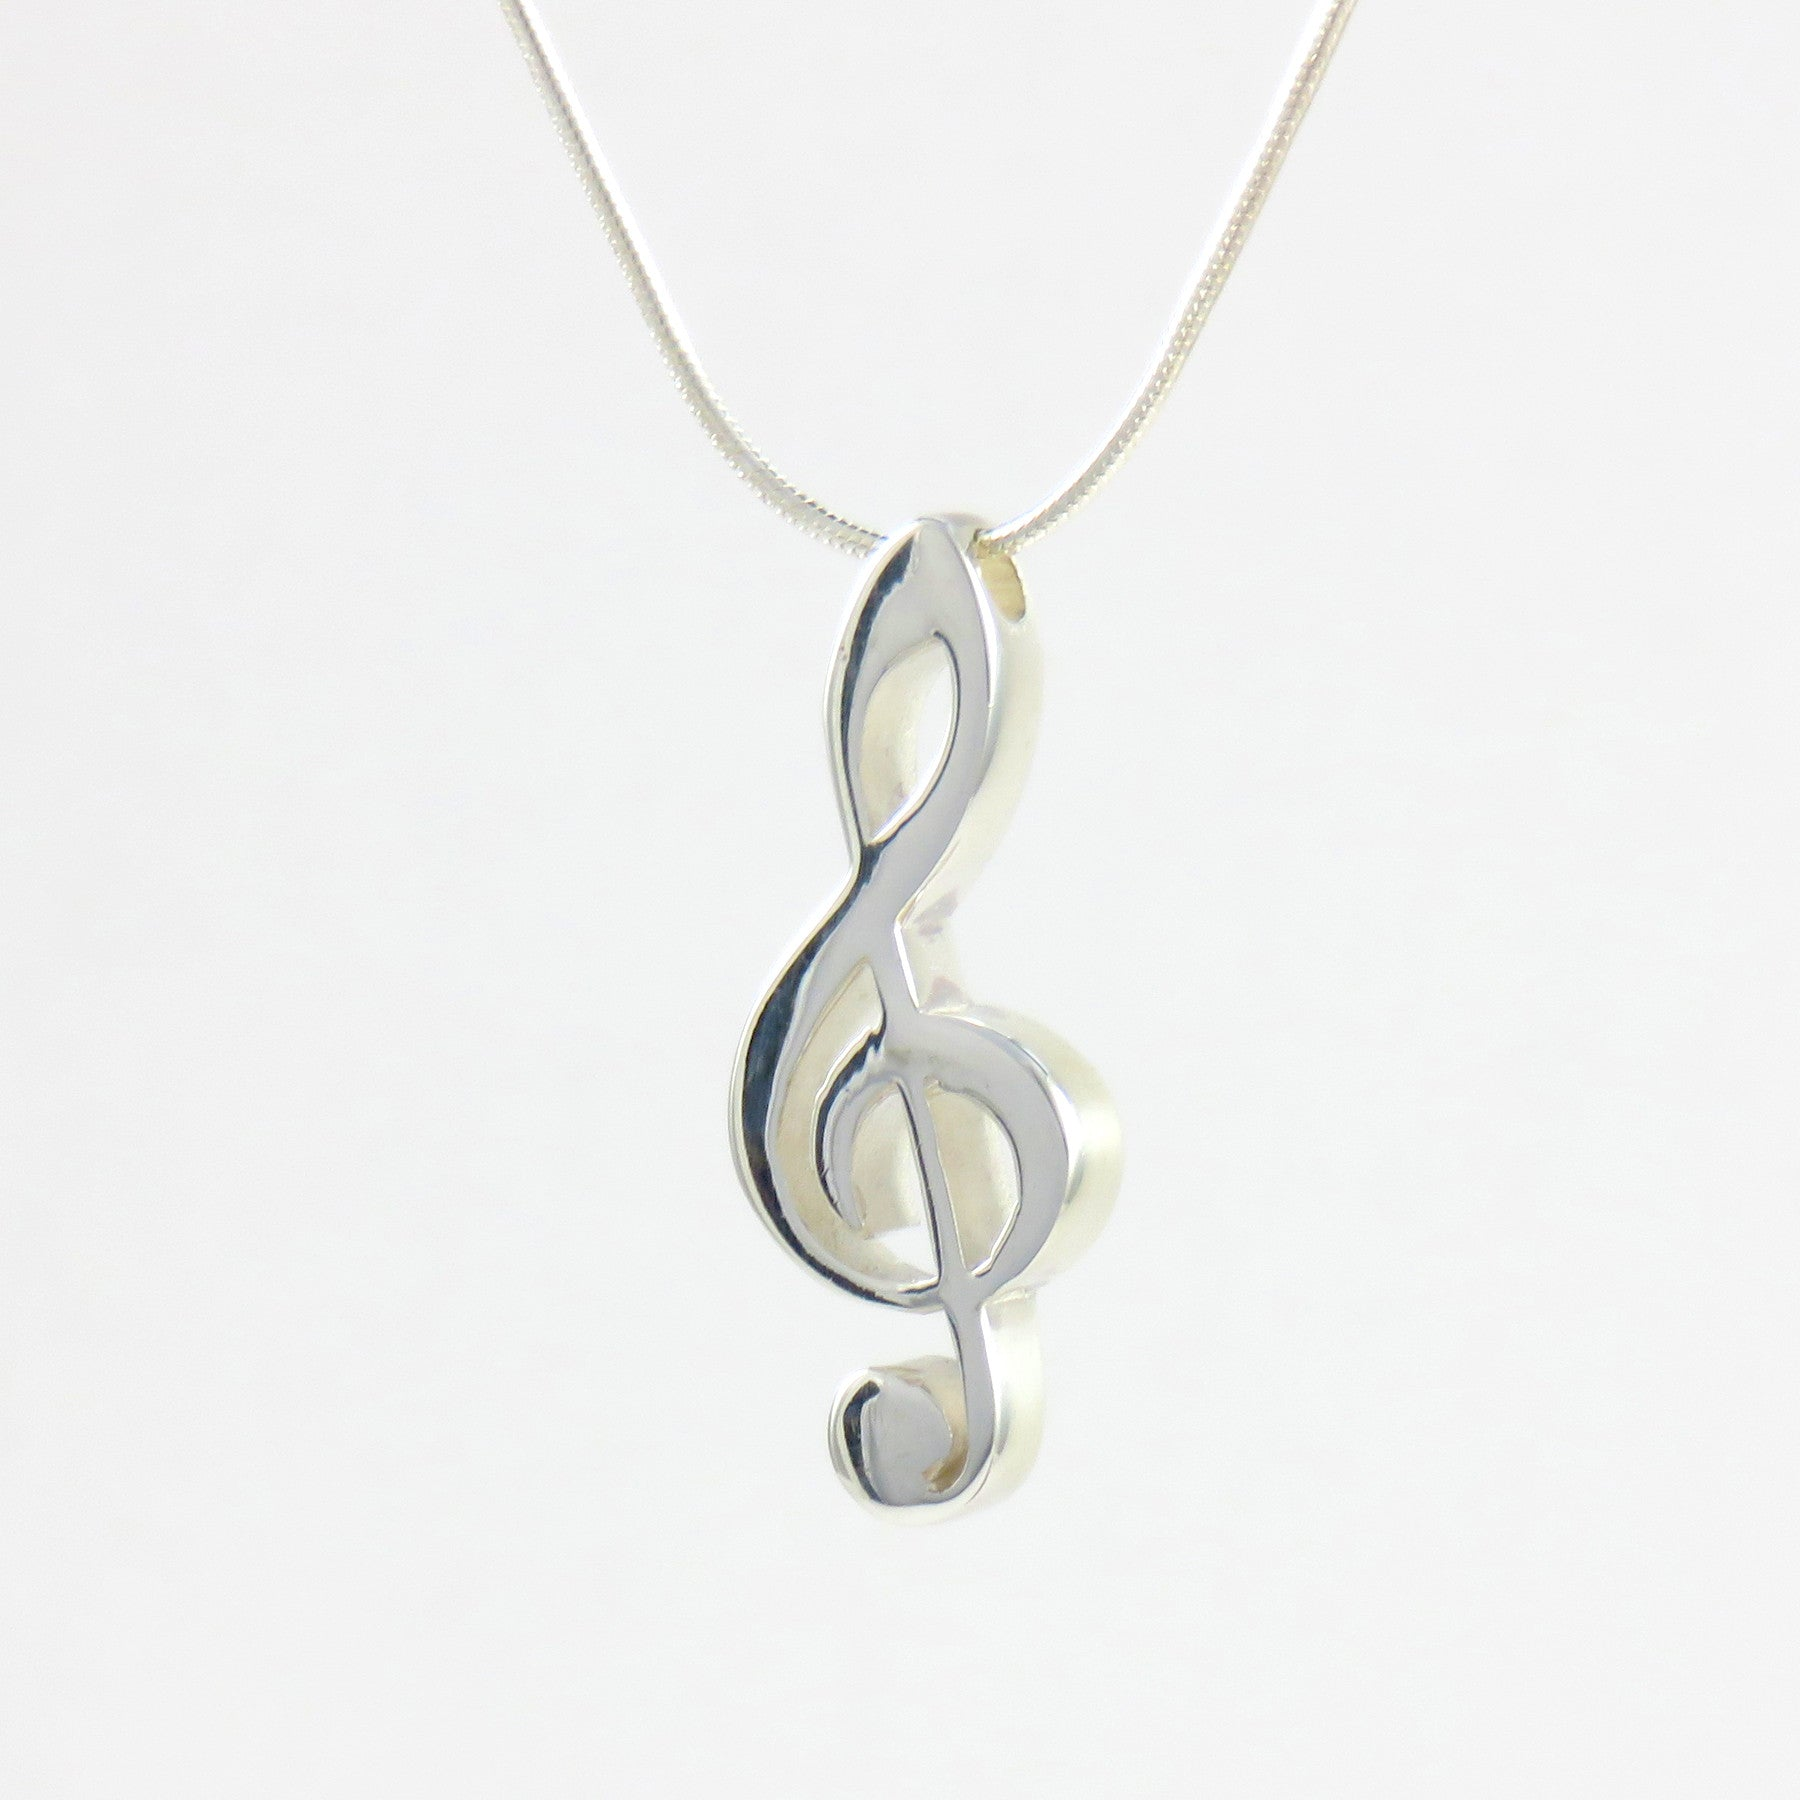 pendant fine handmade sterling with pin sheet music necklace silver musical notes